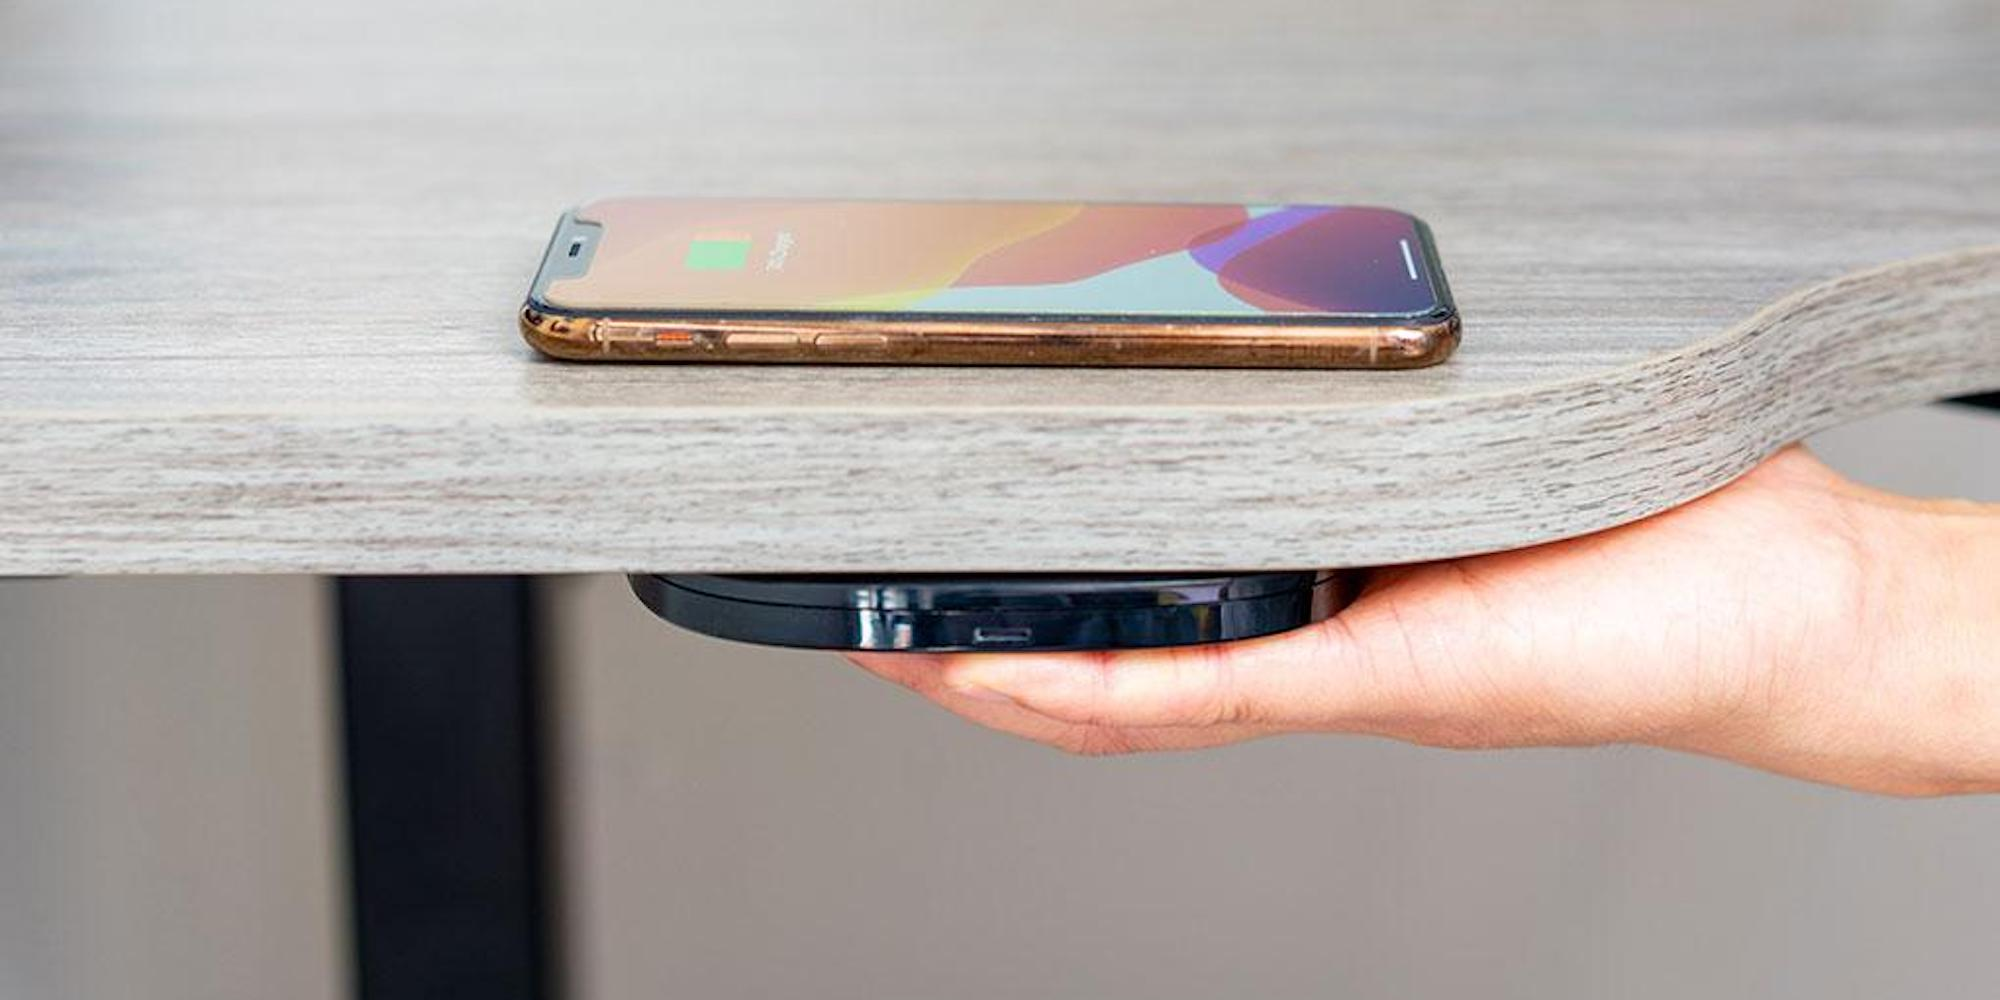 This wireless charger is invisible. You never see it, yet all your devices stay charged